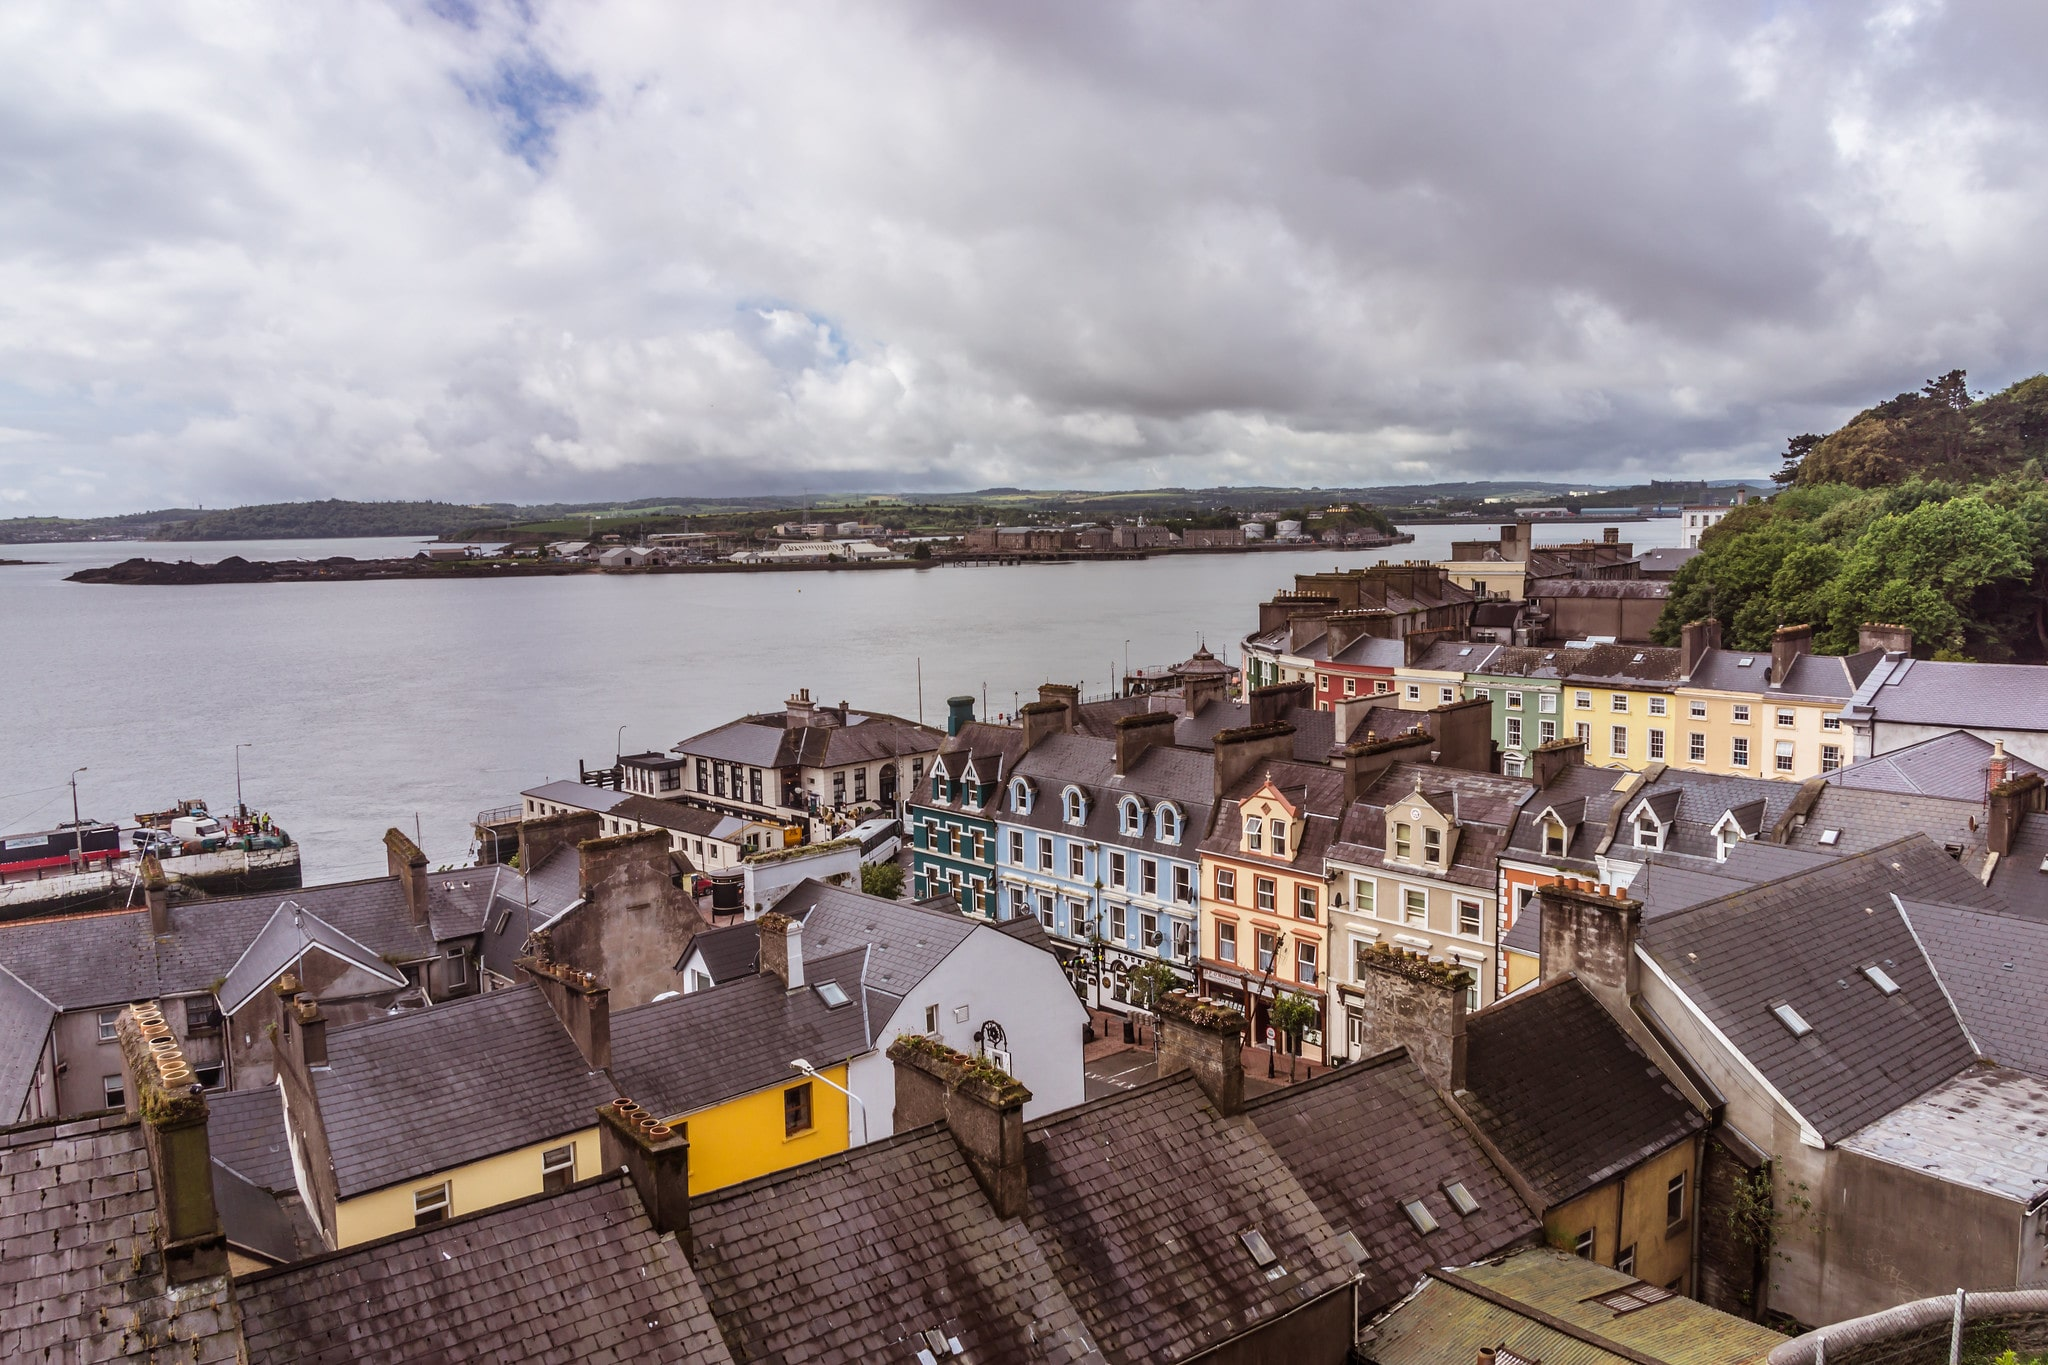 Visiting the Titanic museum in Cobh is a great thing to do in Cork Ireland